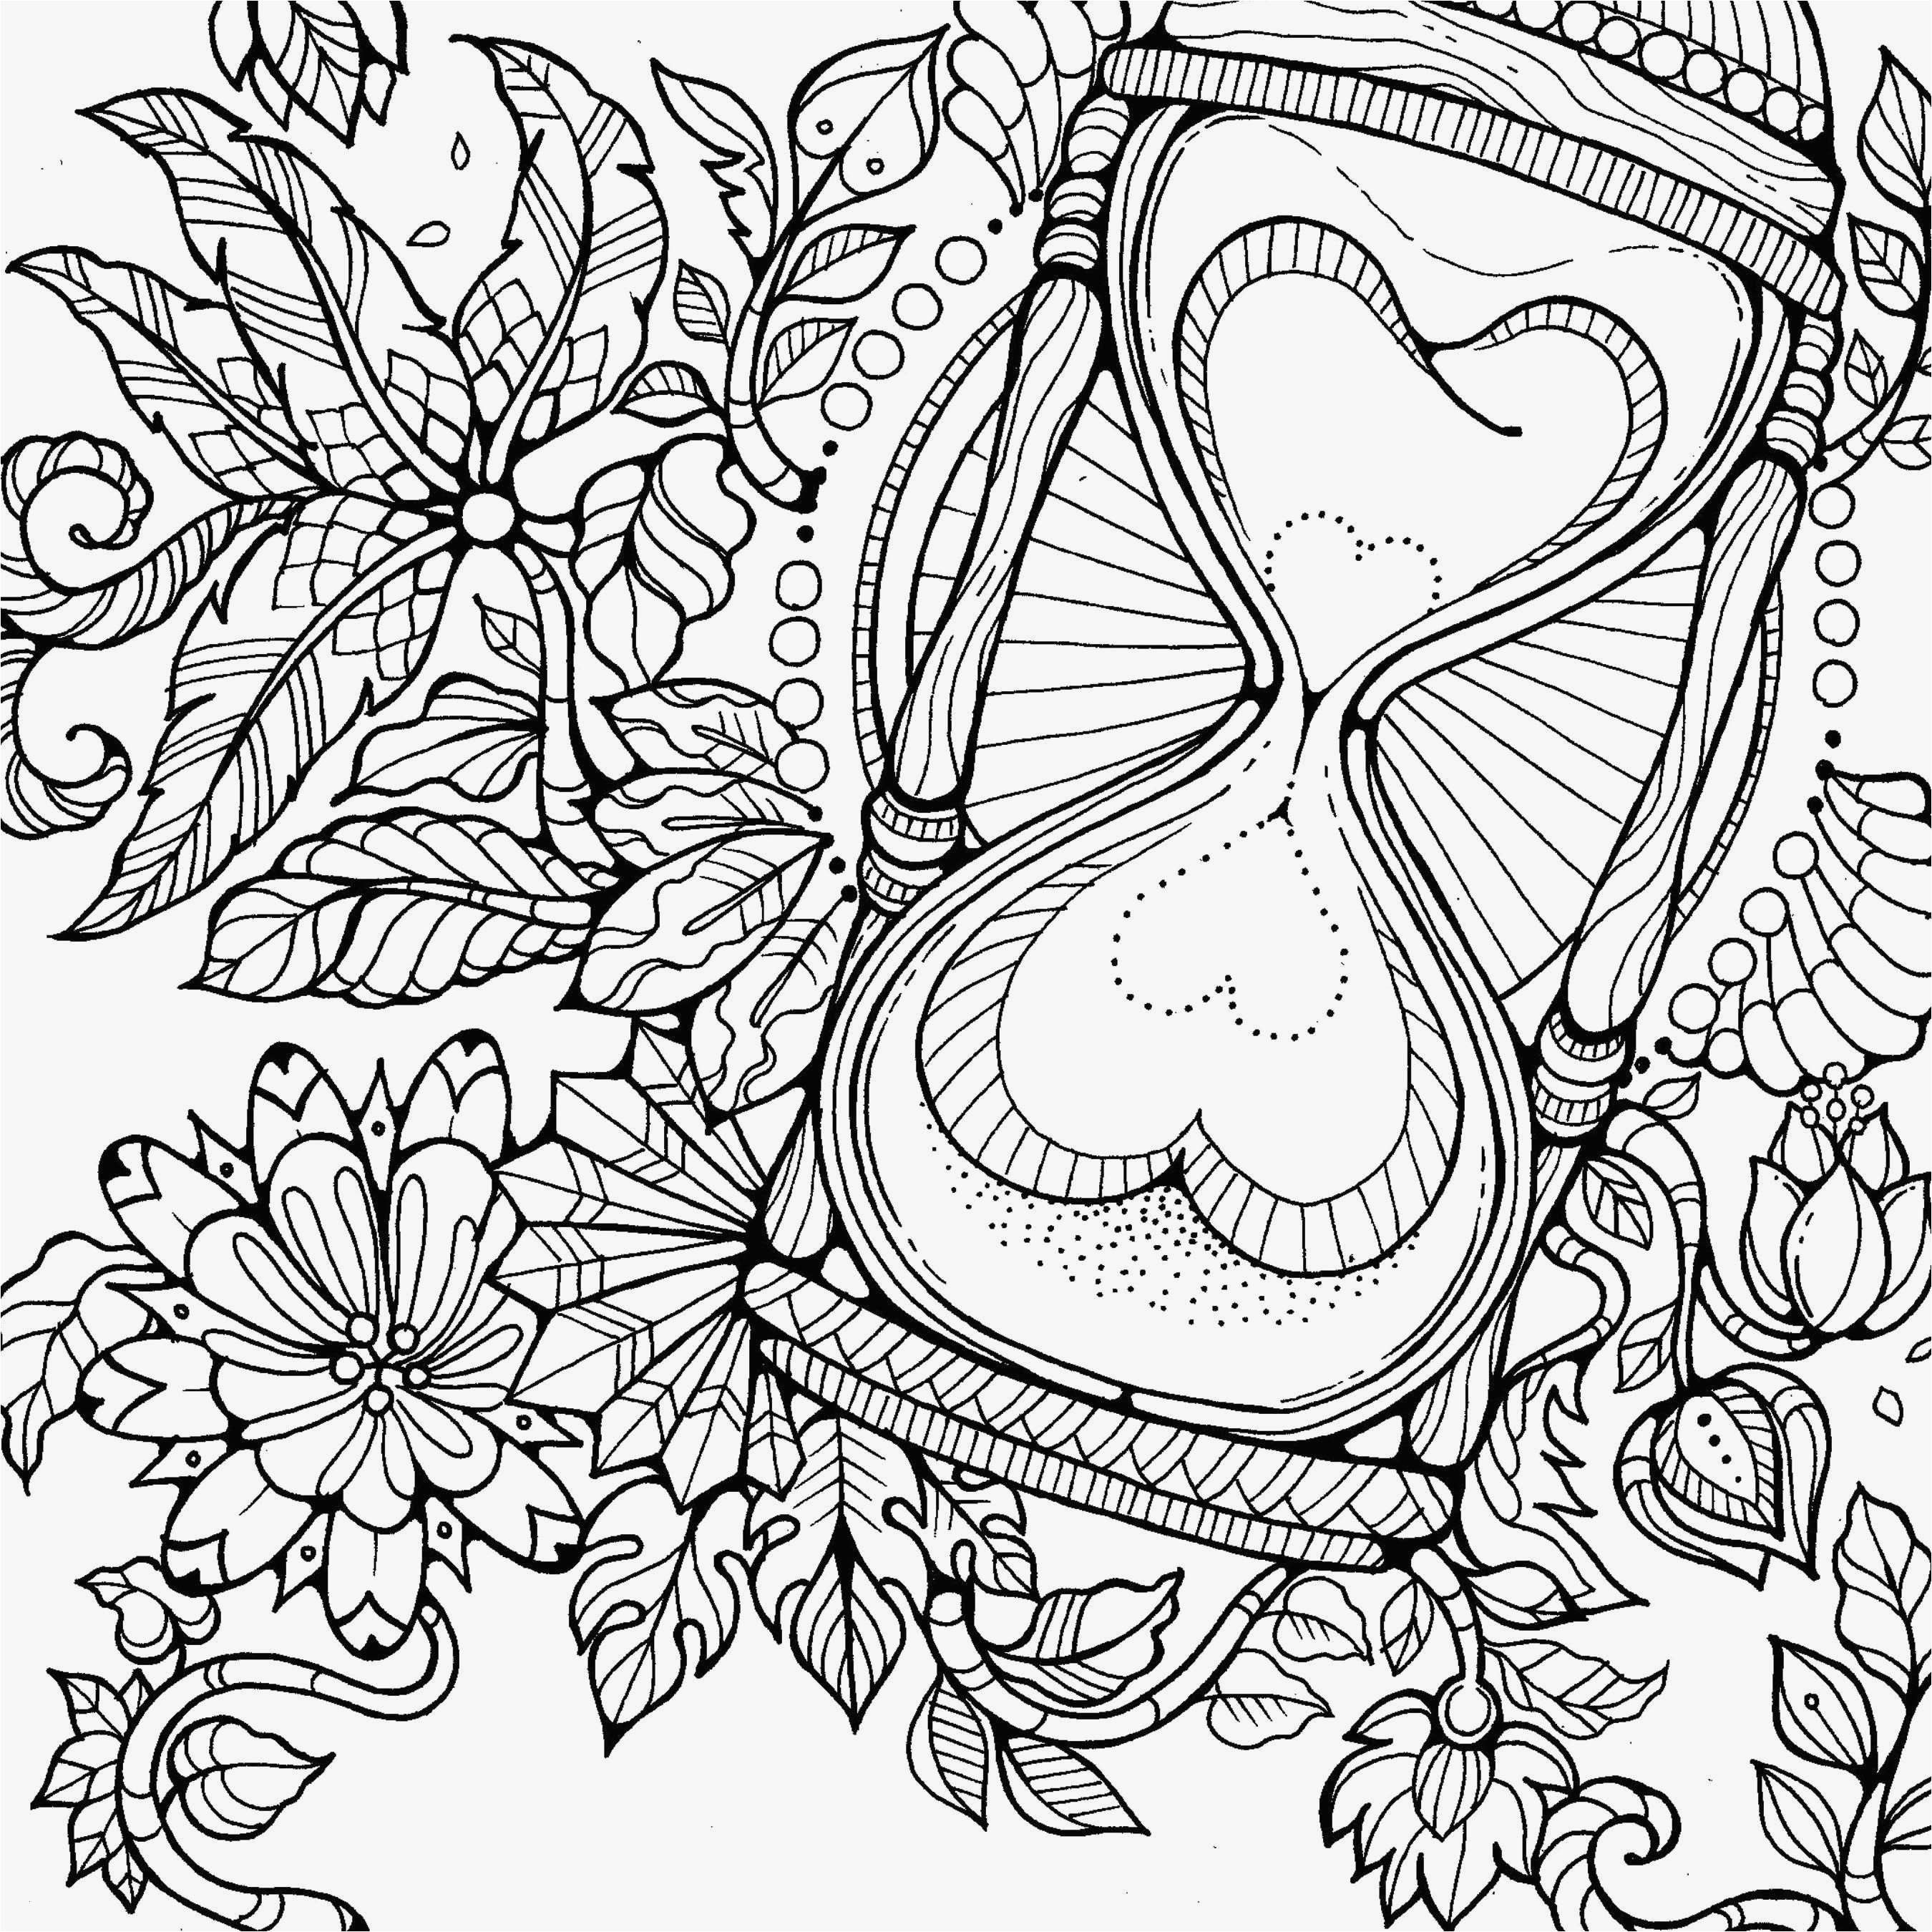 zentangle coloring pages free printable zentangle coloring pages free printable printable zentangle free pages coloring